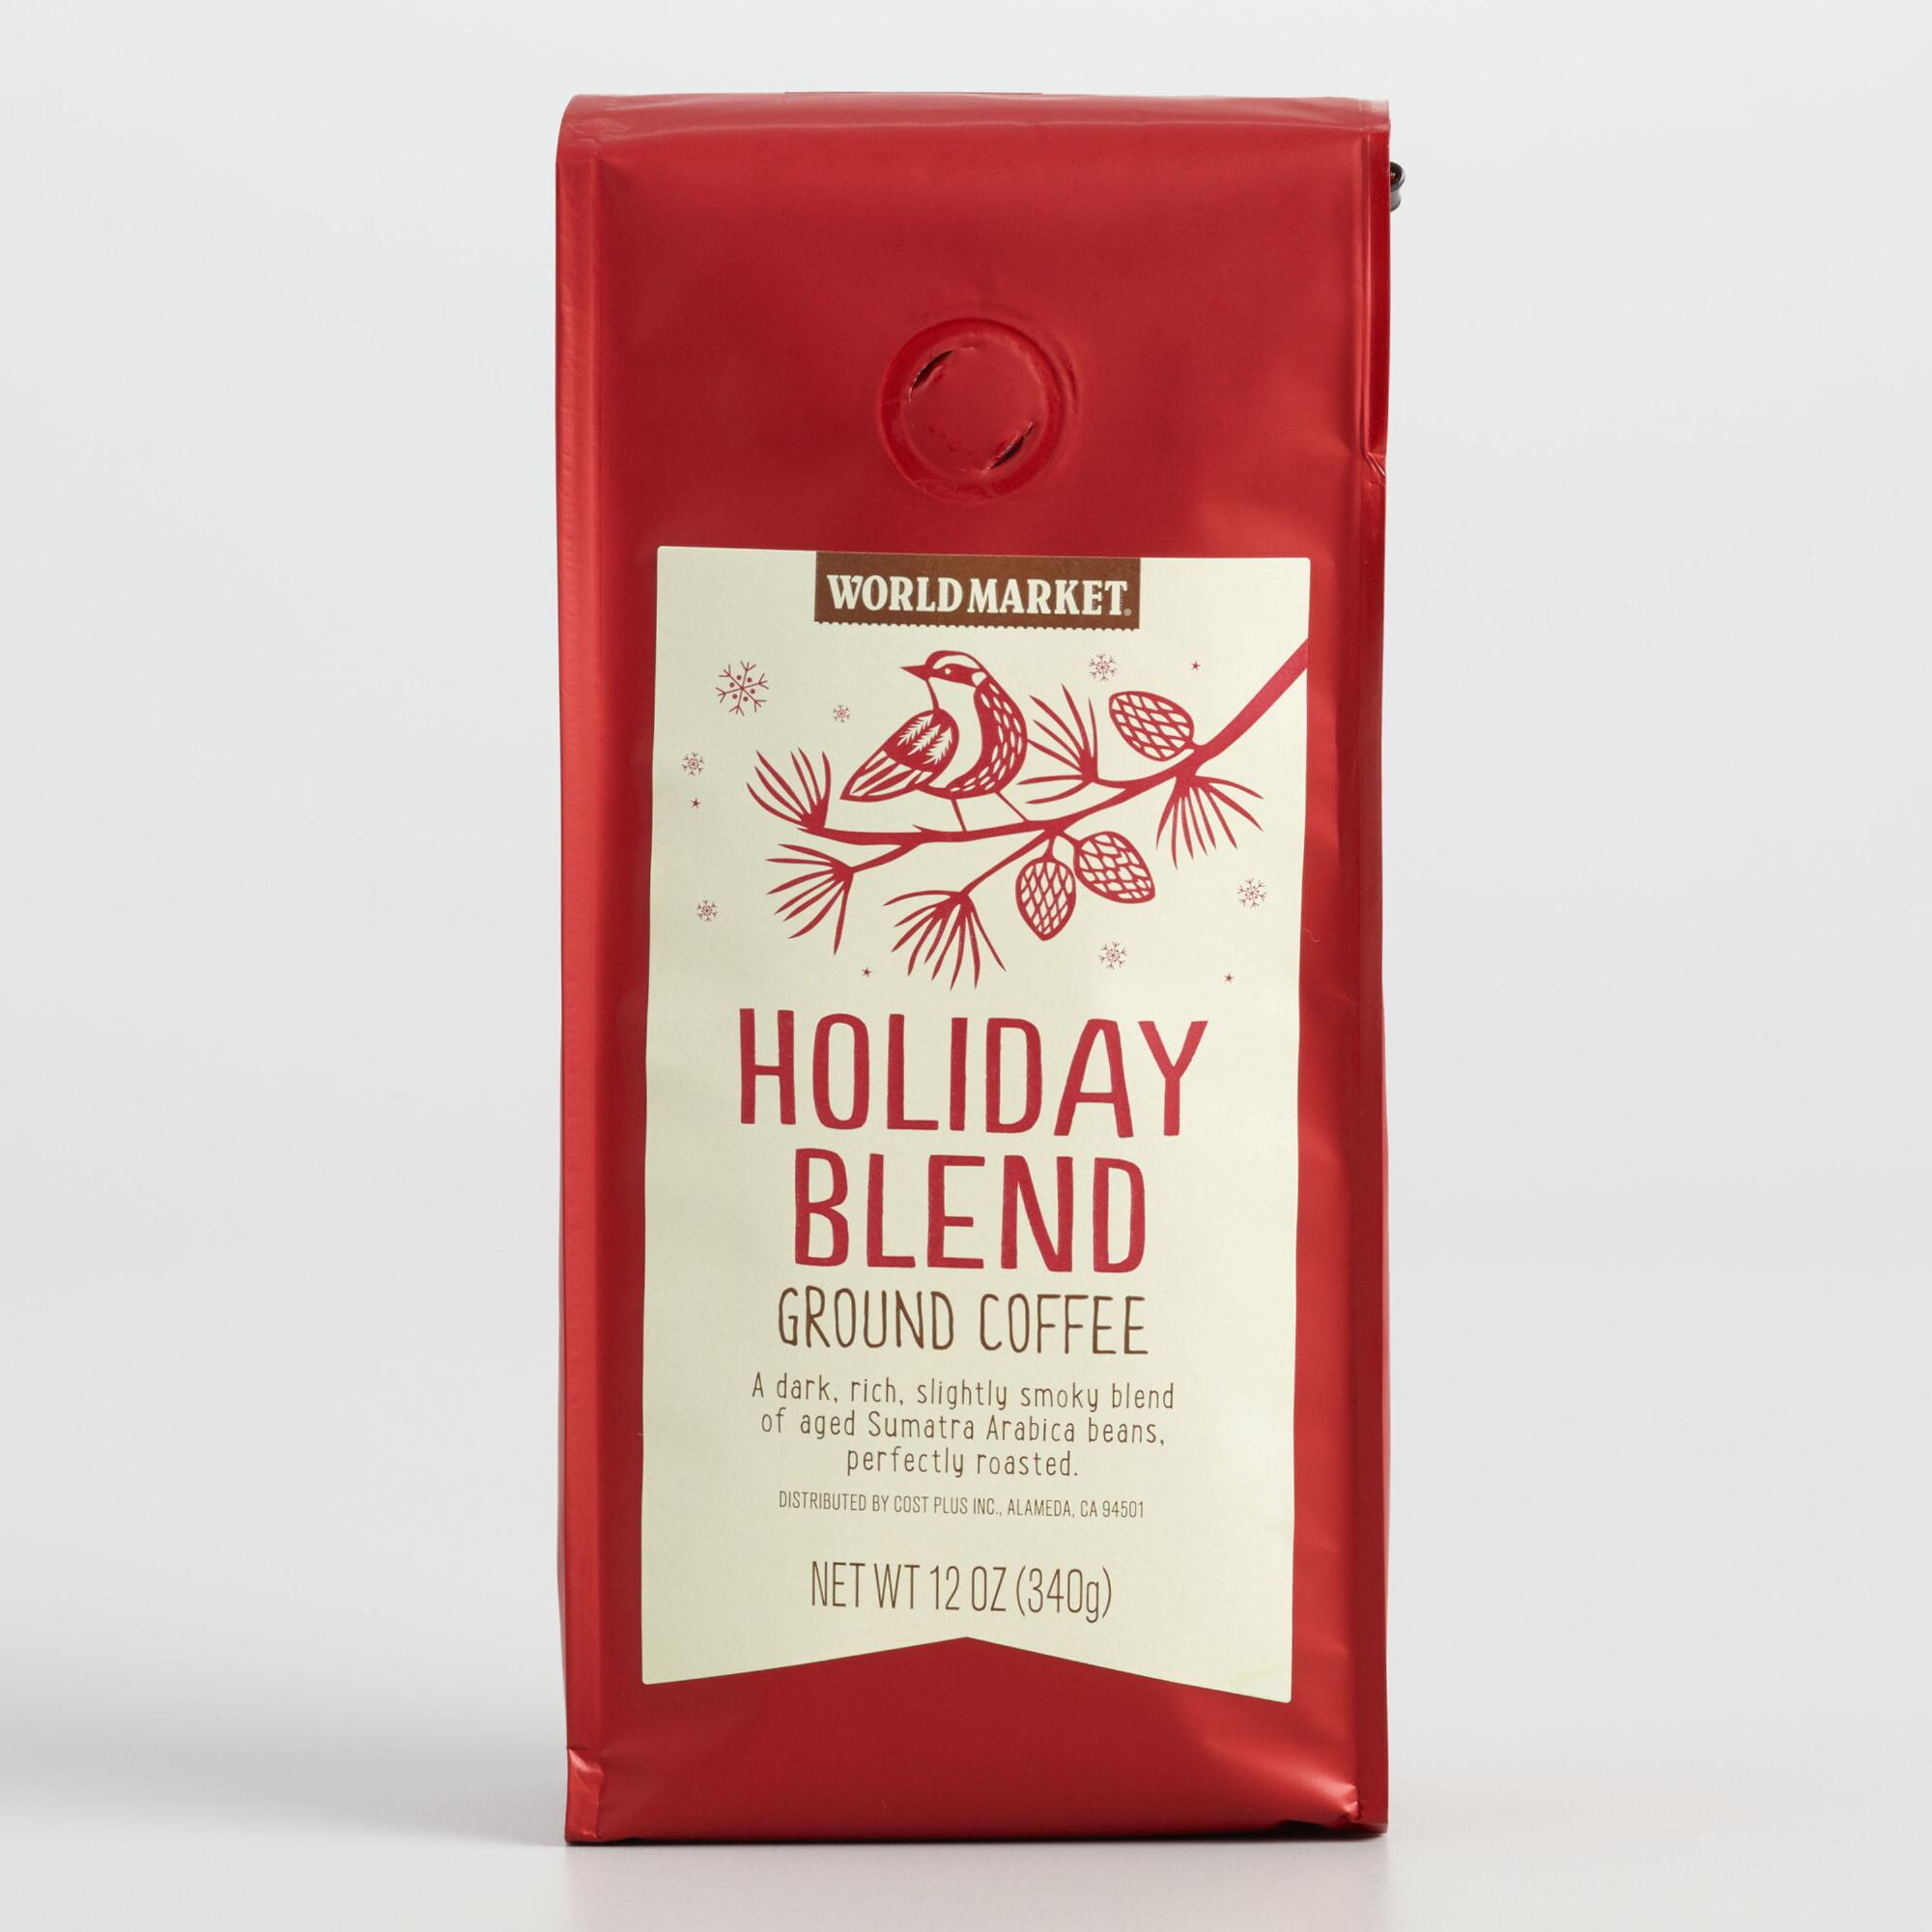 Pin By Urja Barros On Projeto Cafe Holiday Blend Blended Coffee Blended Coffee Drinks